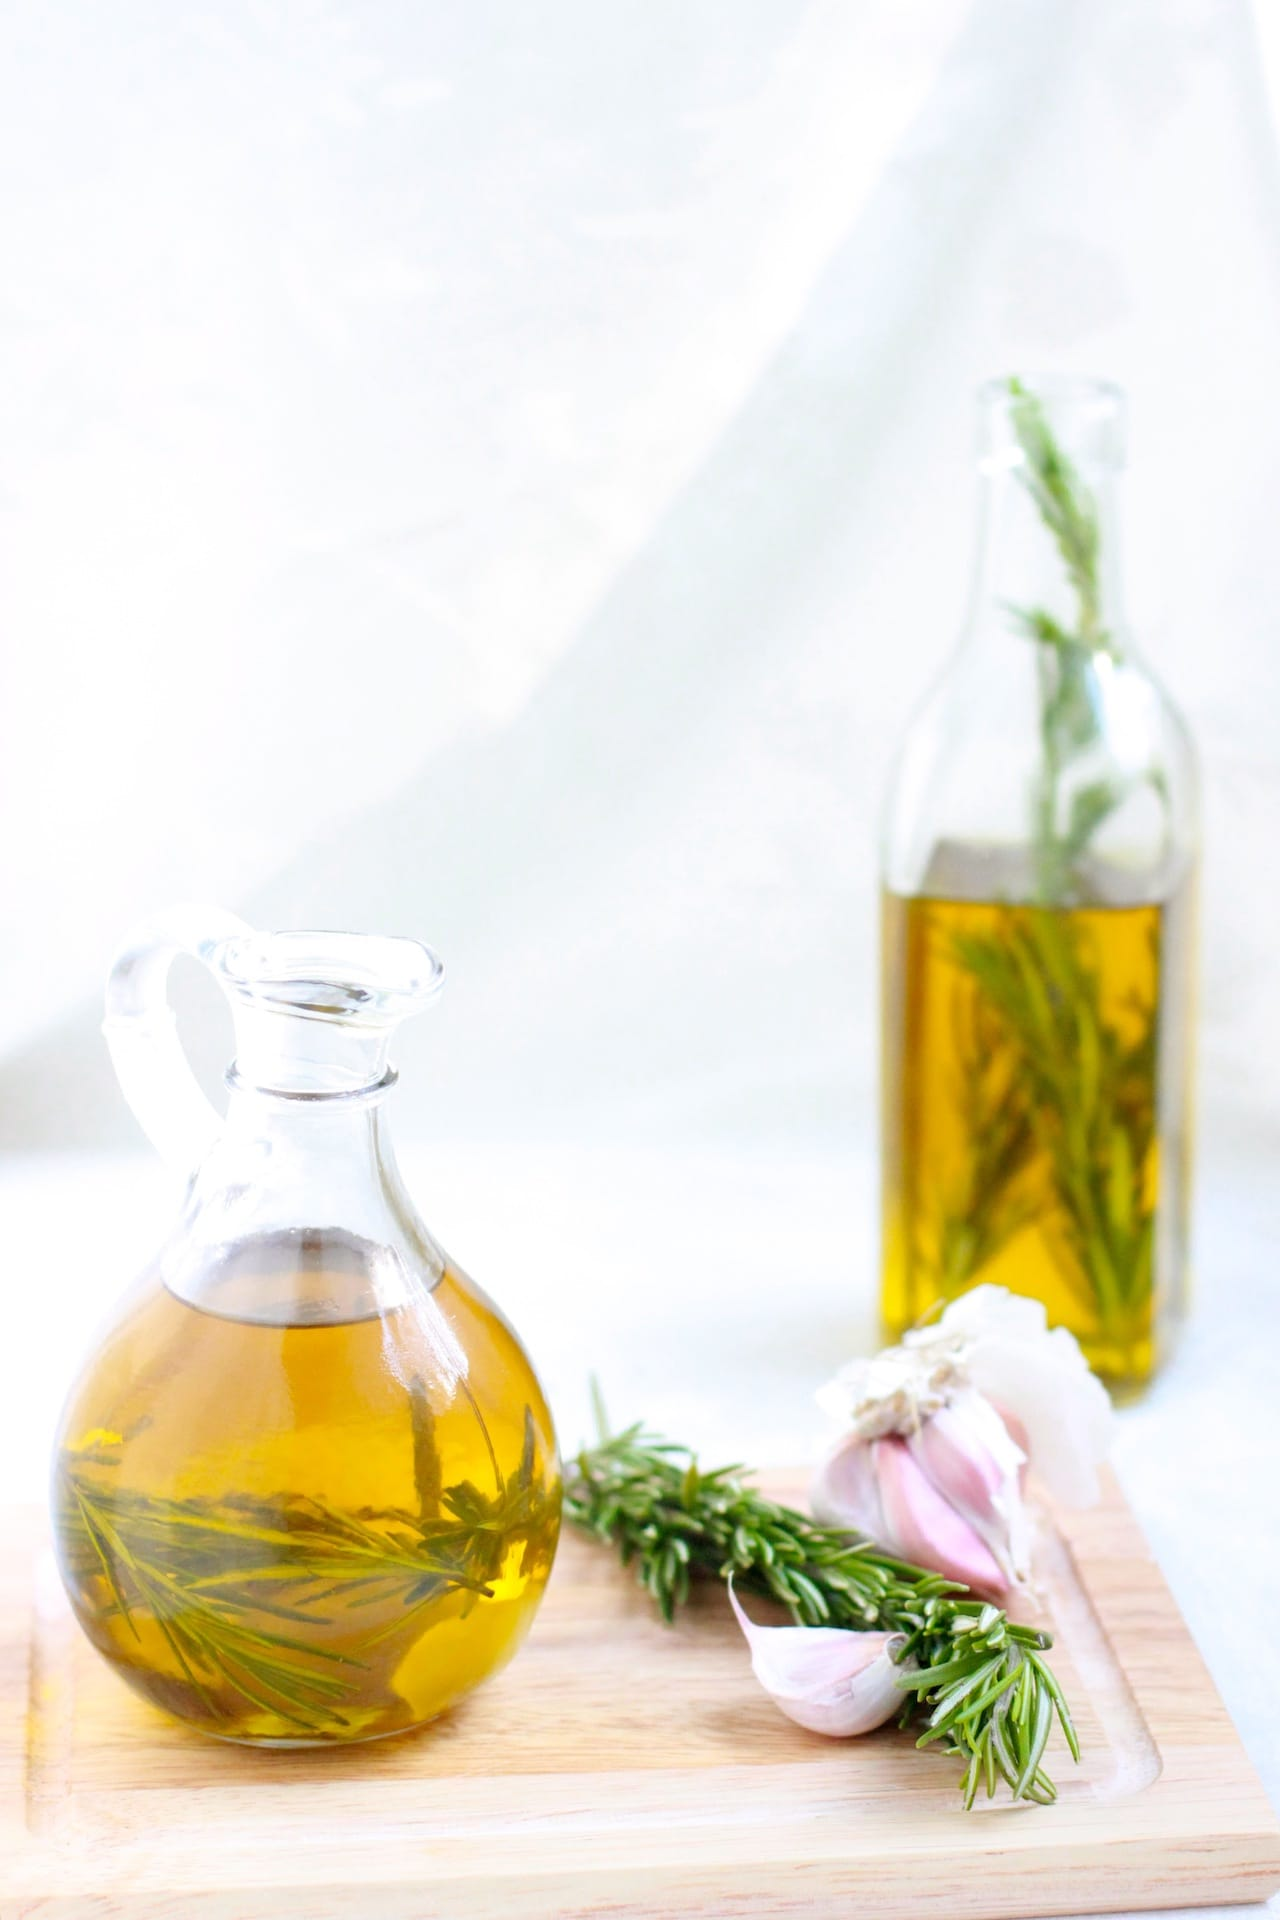 Rosemary and Garlic Infused Olive Oil 5